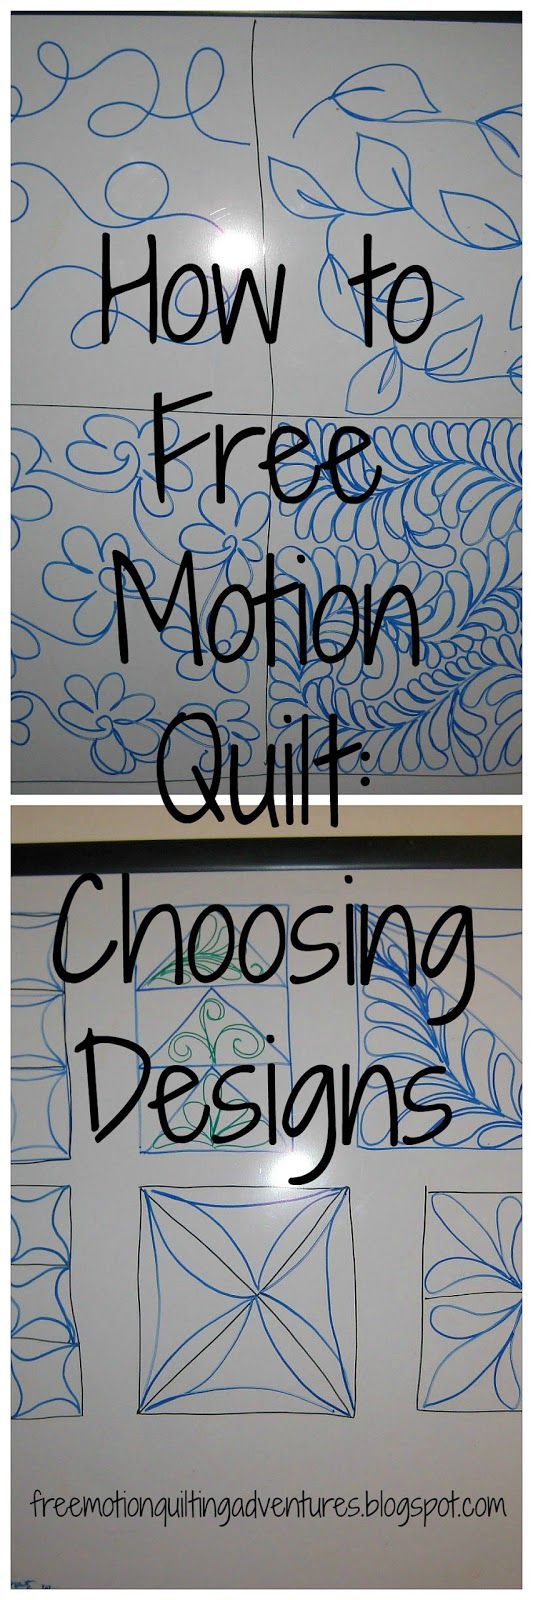 1108 best Mid-Arm Quilting images on Pinterest | Free motion ...